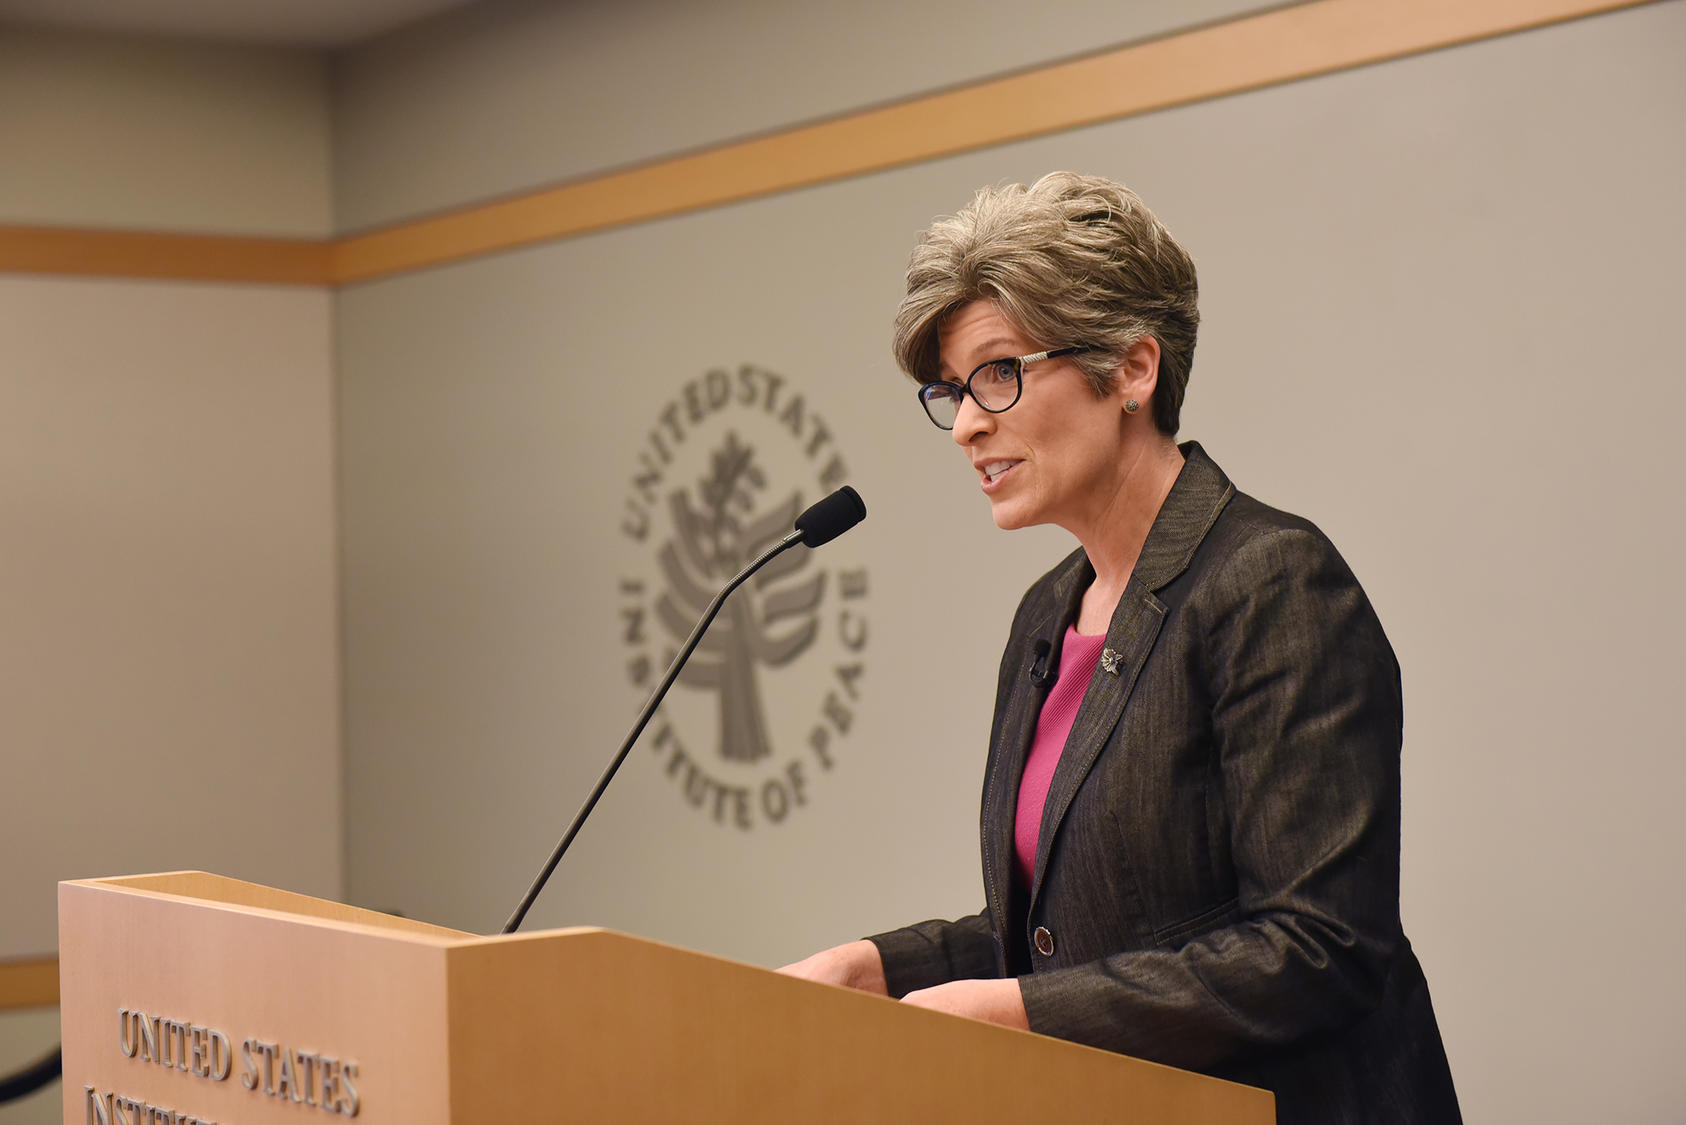 Senator Joni Ernst discusses U.S. policy options in Iraq at the U.S. Institute of Peace on July 26, 2018.